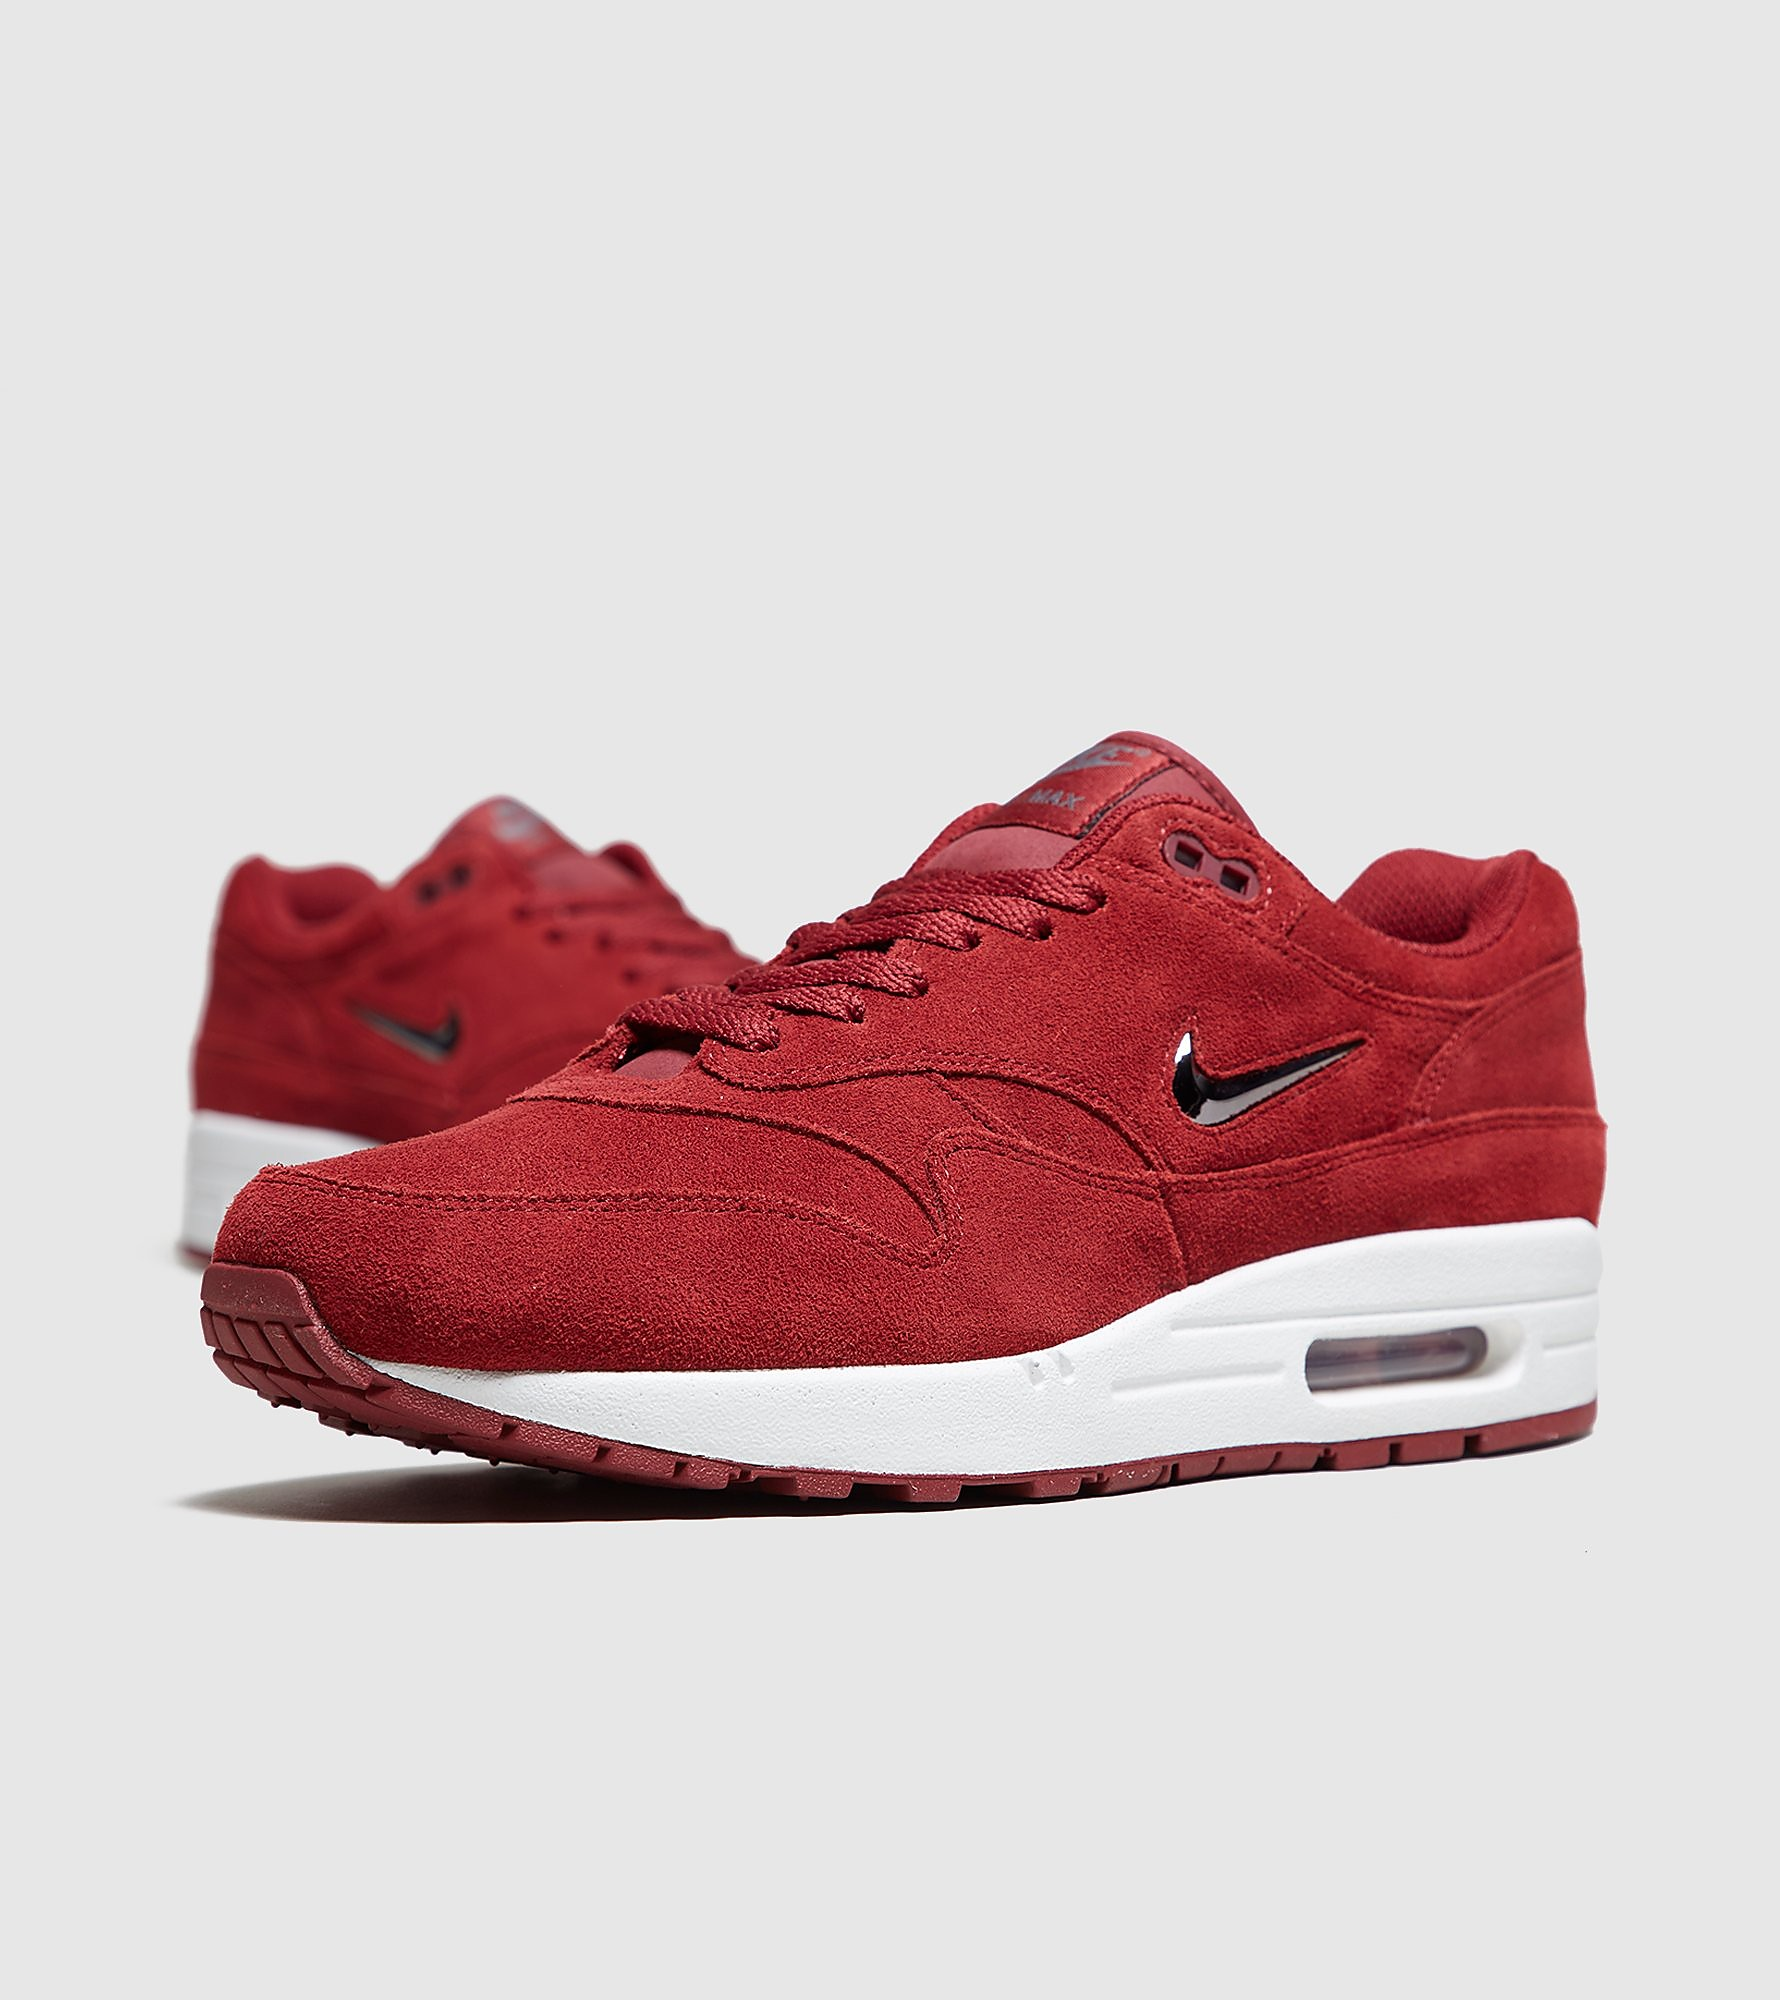 Nike Air Max 1 Jewel Suede